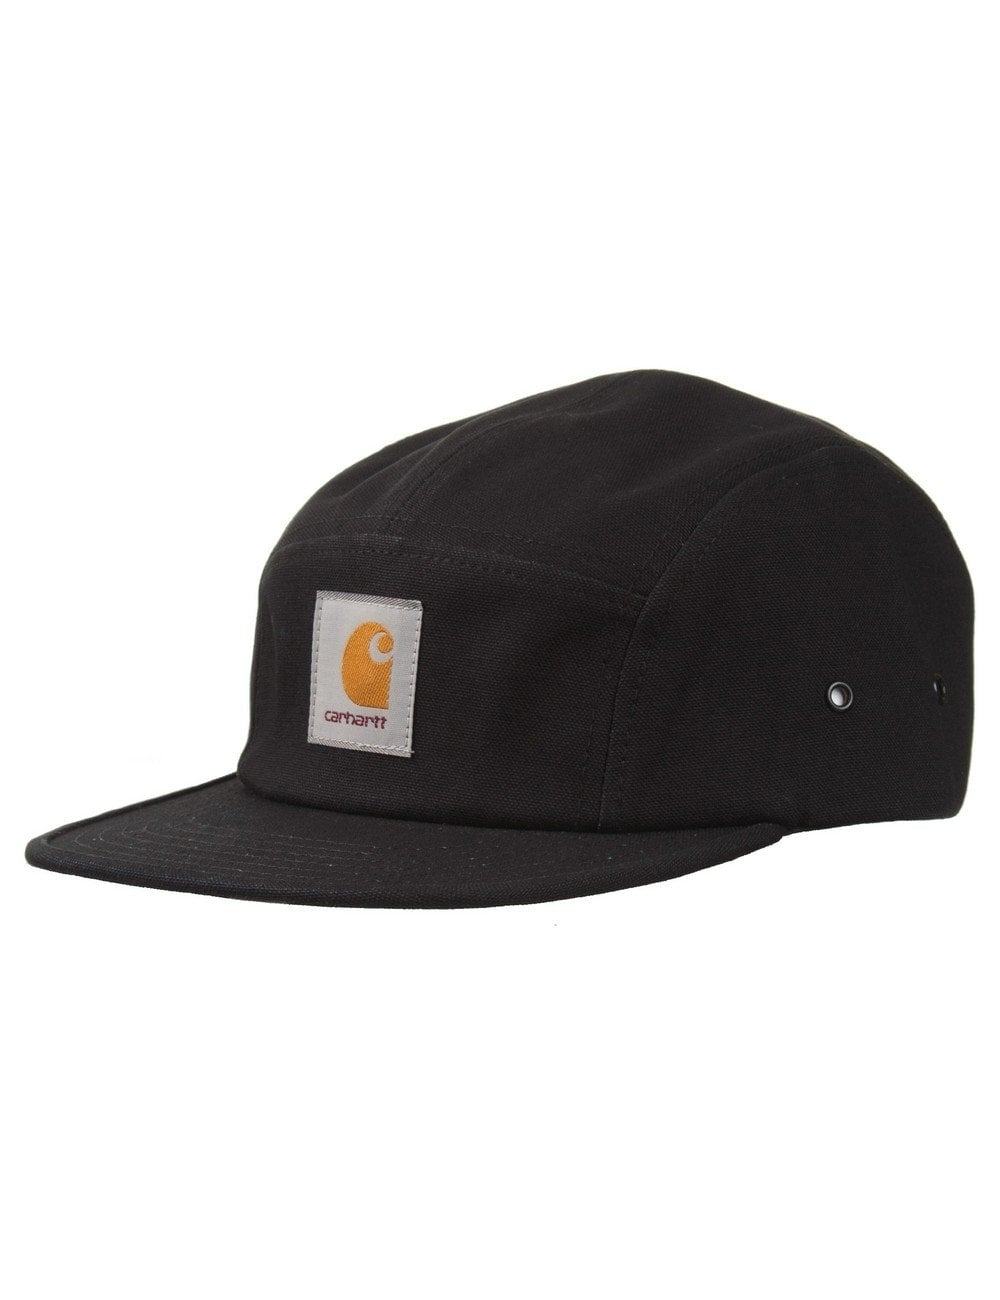 24804d5c Carhartt WIP Backley 5 Panel Cap - Black - Accessories from Fat ...